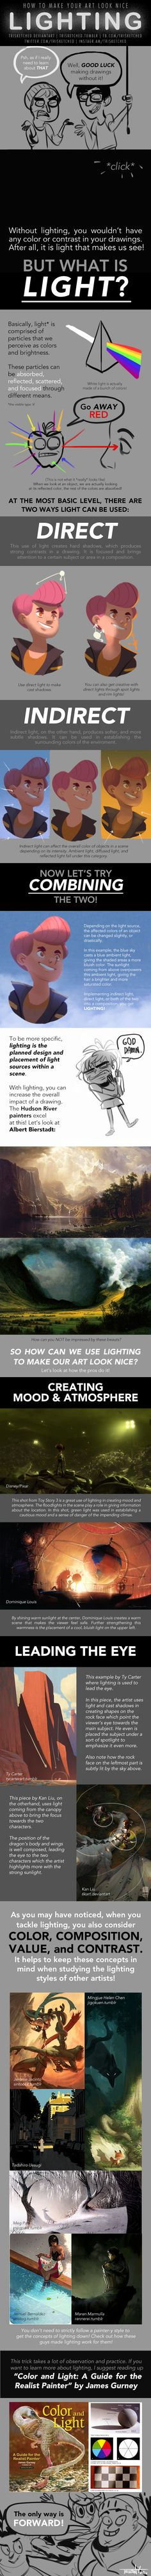 HOW TO MAKE YOUR ART LOOK NICE: Lighting by trisketched on DeviantArt